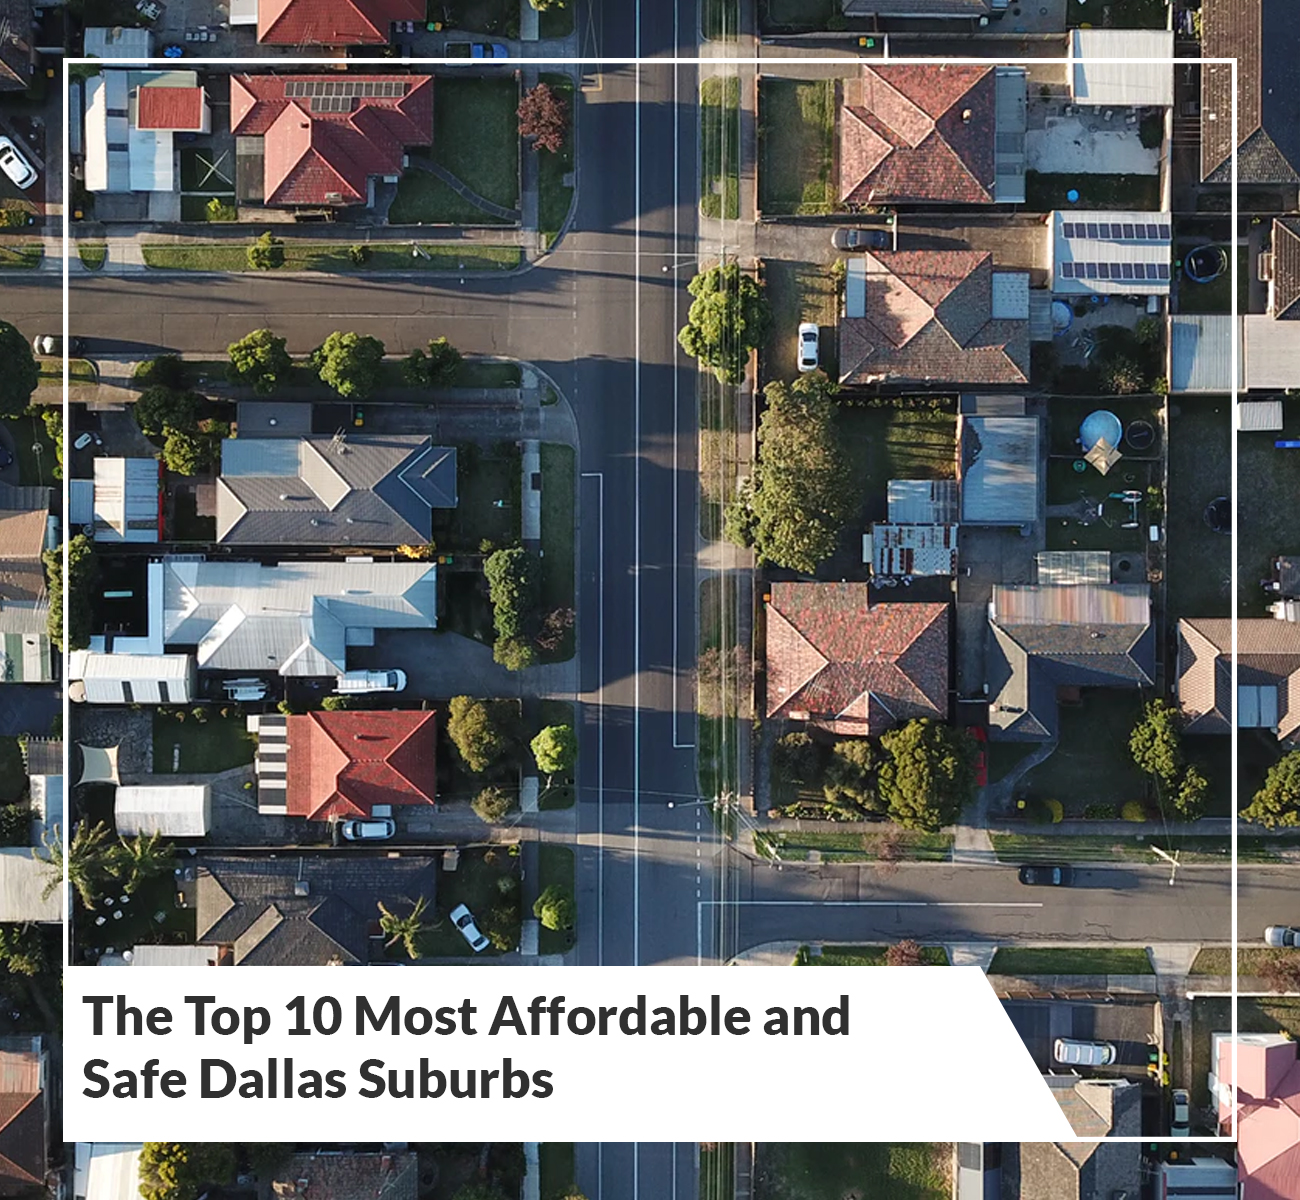 Top 10 Most Affordable, Safe Suburbs in Dallas